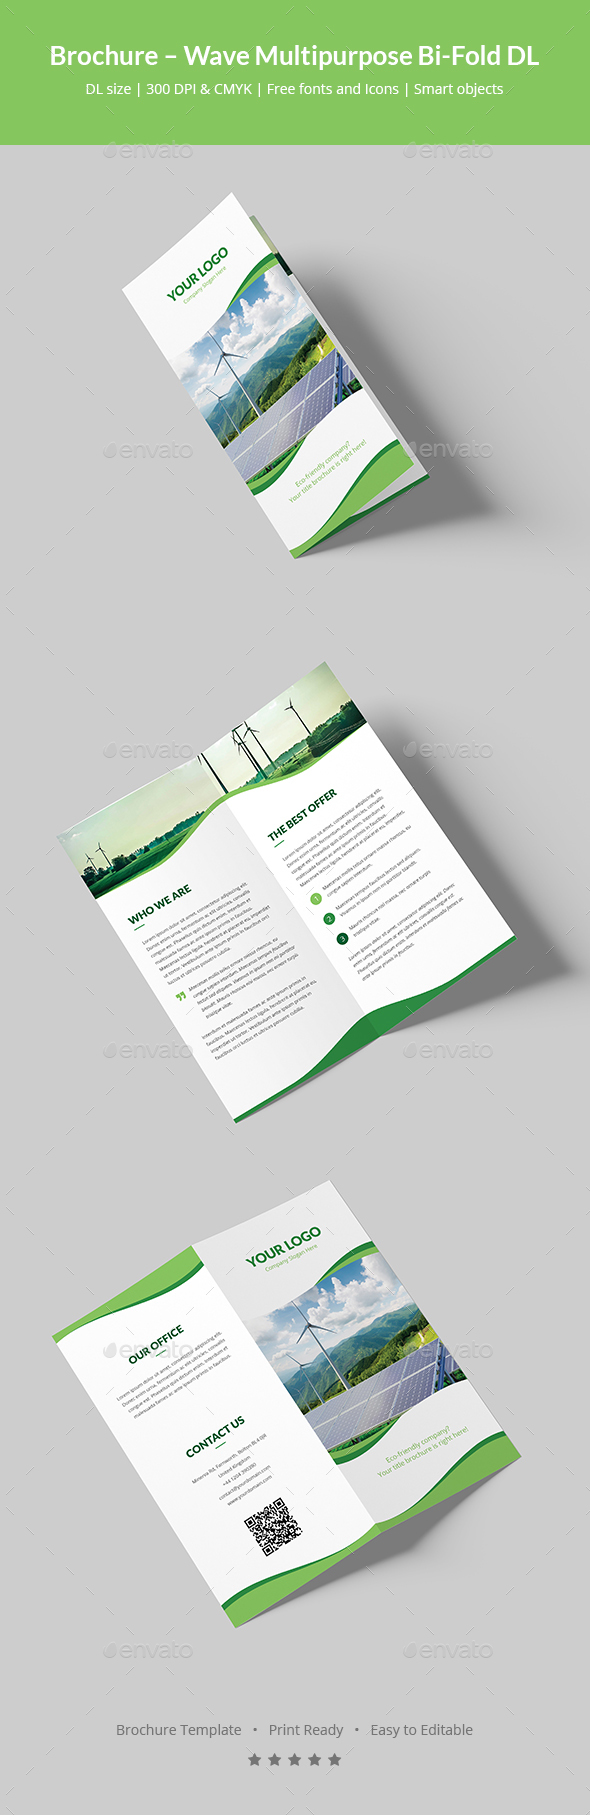 Paper windmills illustrator stock for Bi fold brochure template illustrator